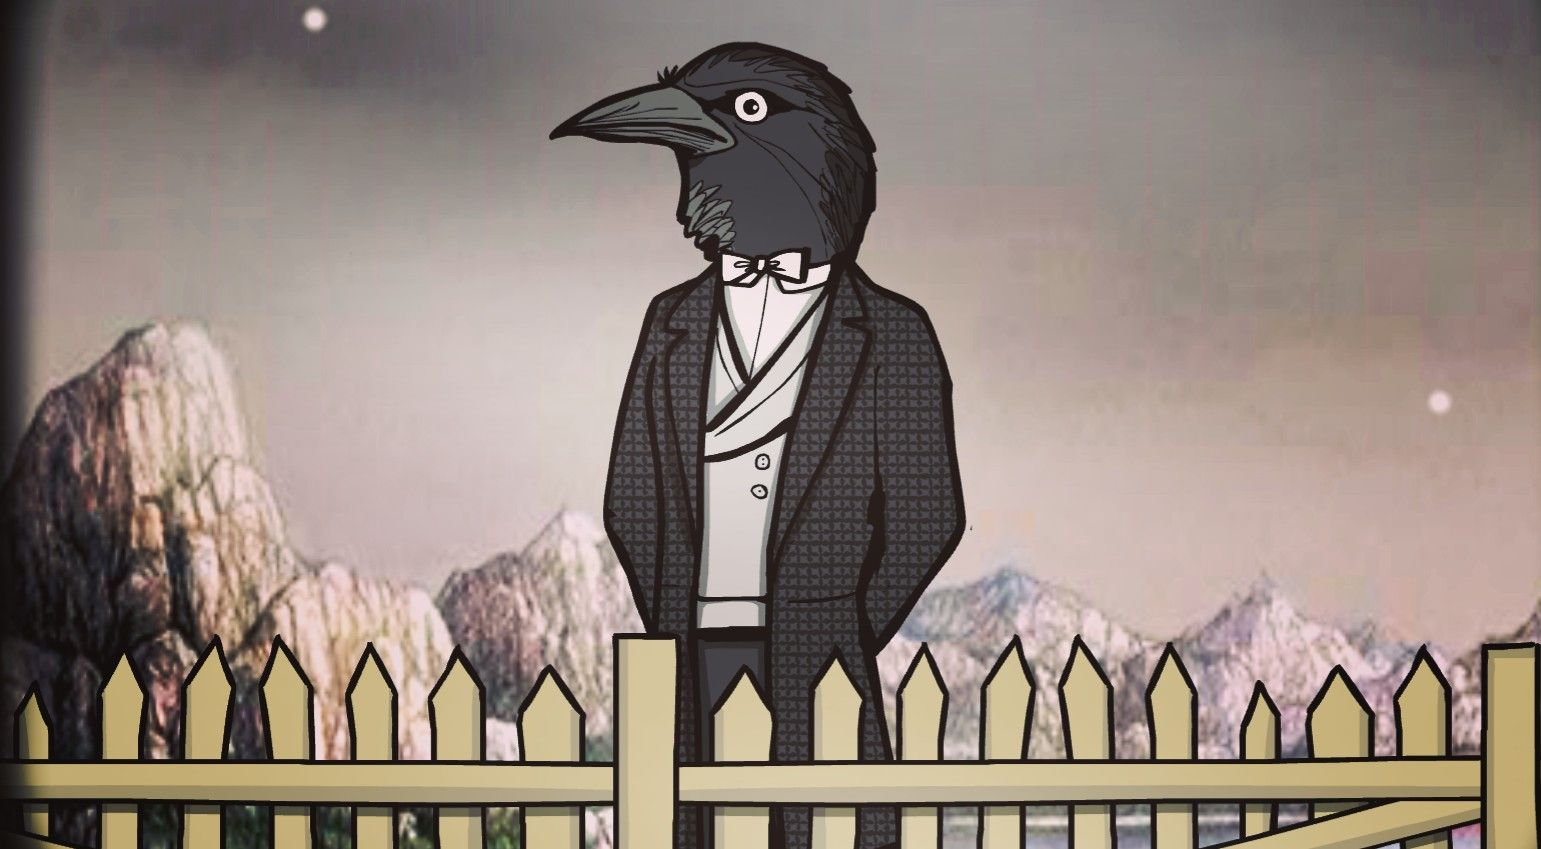 Rusty Lake Roots mr. Crow in 2020 | Lake, Lake art, Lake hotel